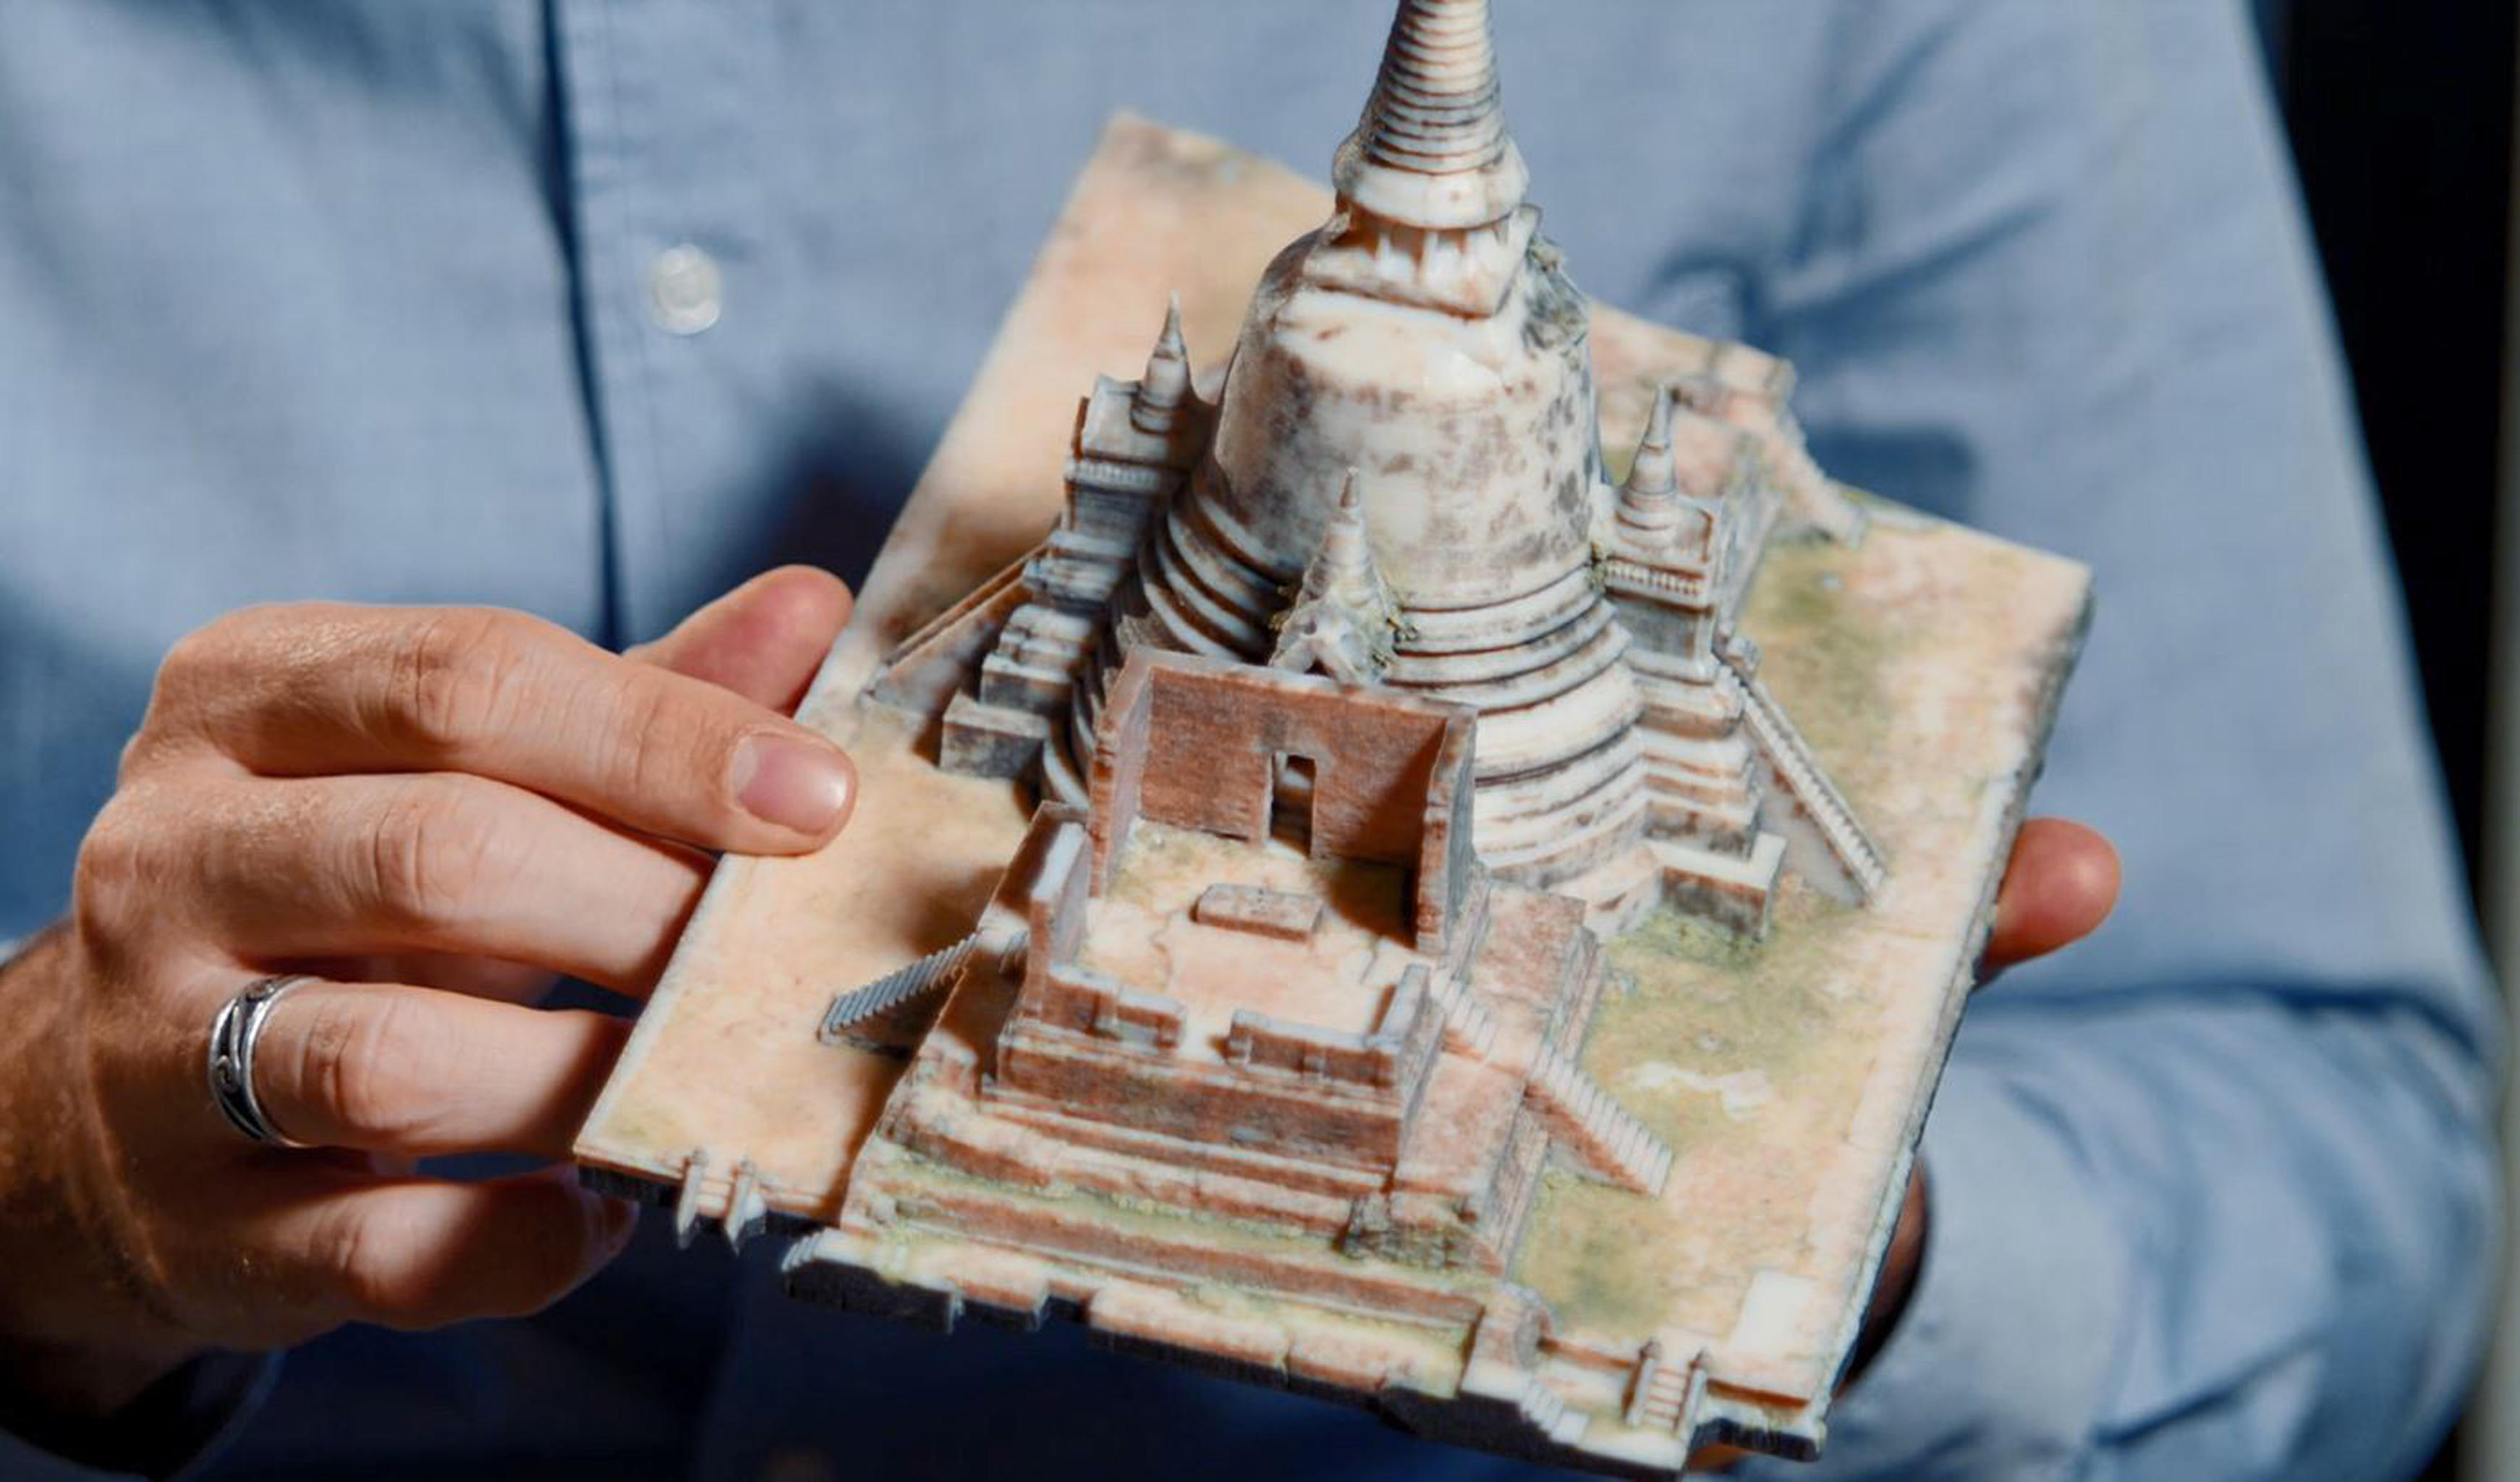 A 3D printed model of Ayutthaya temple in Thailand, produced using the Stratasys J750.